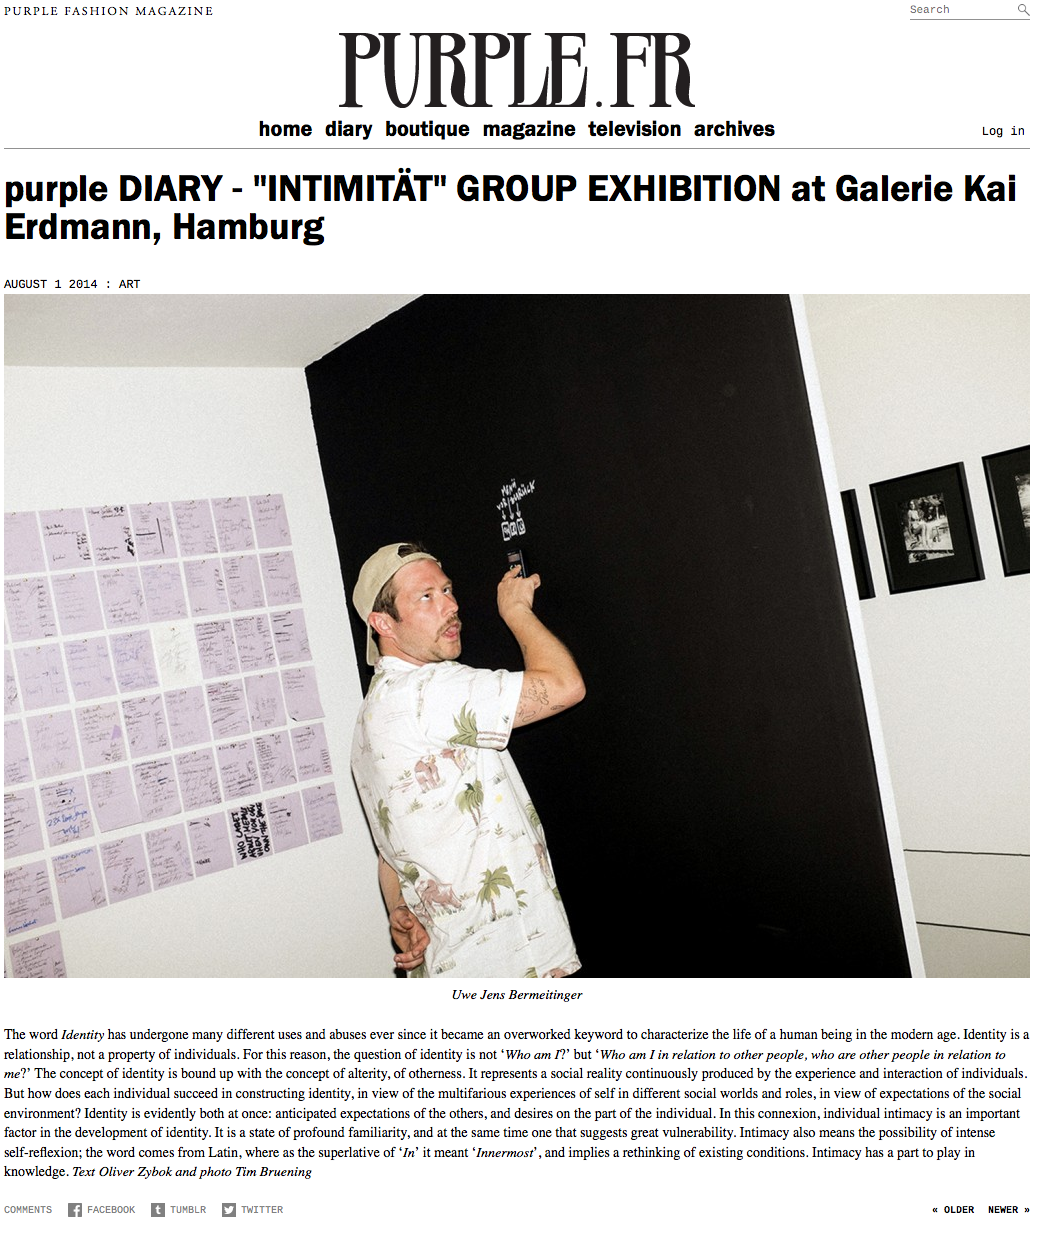 Our chief creative Uwe is behaving bad infront of his installation on purple DIARY: